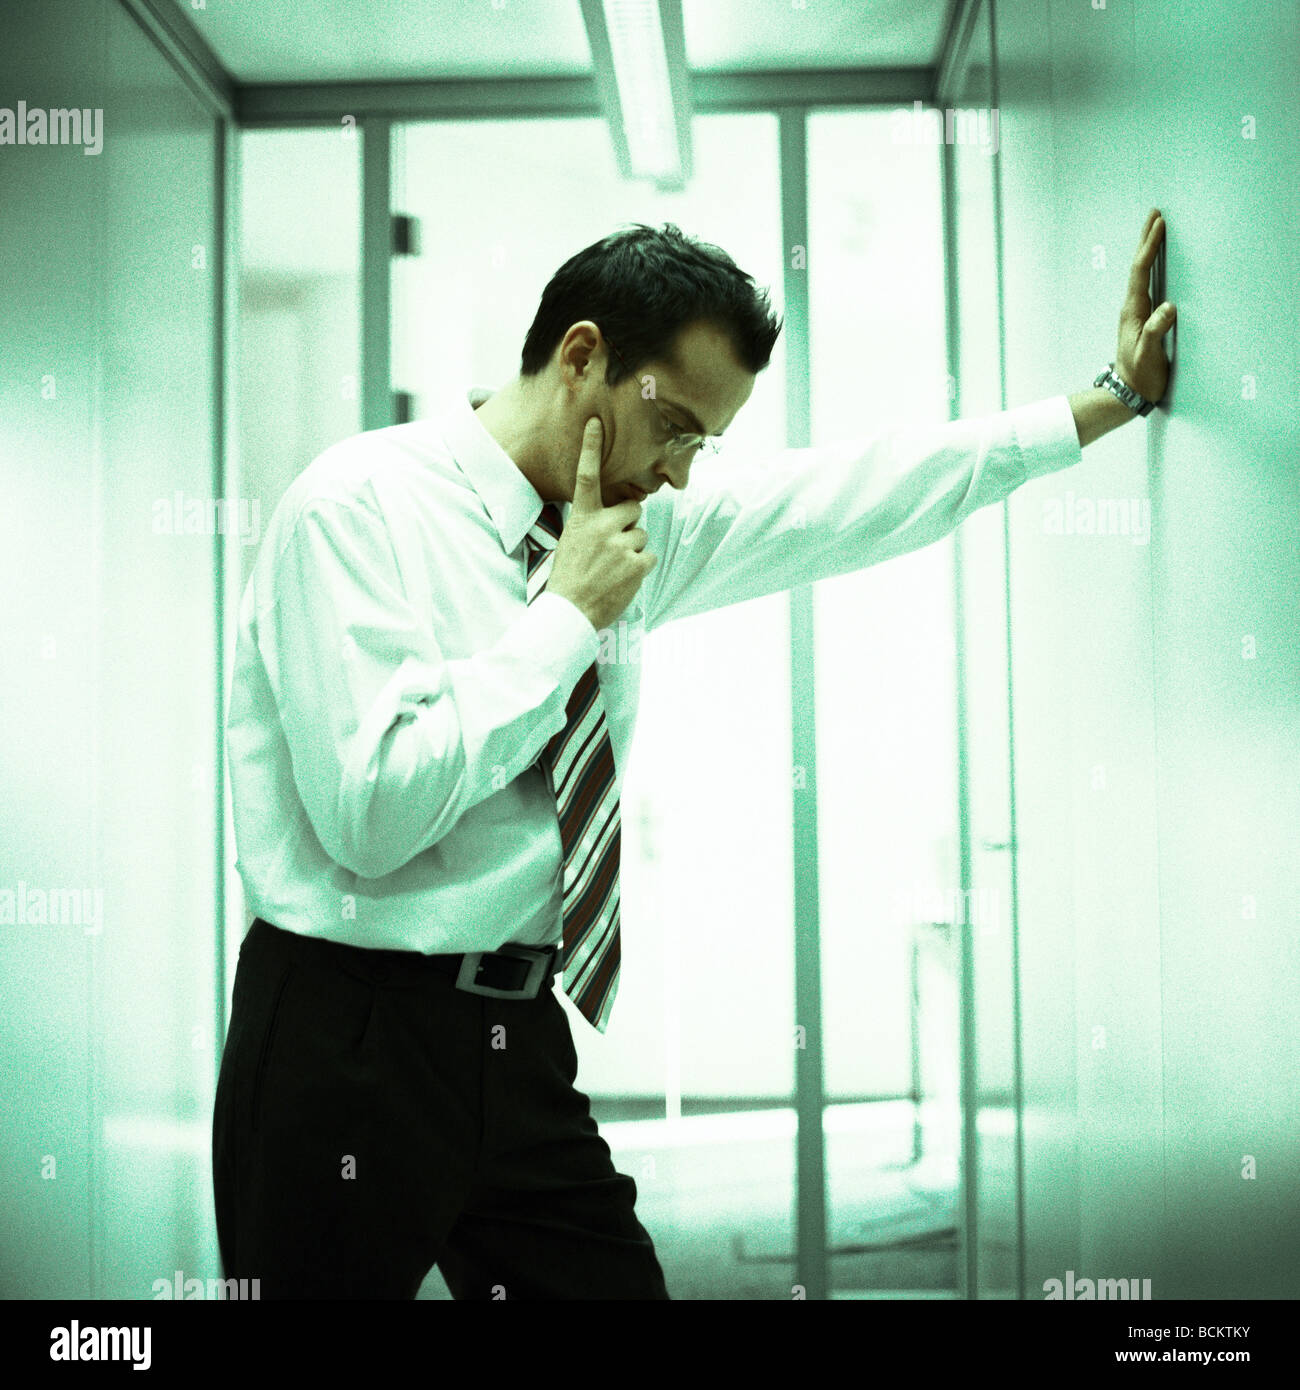 Businessman Standing Leaning Hand On Wall Stock Photo